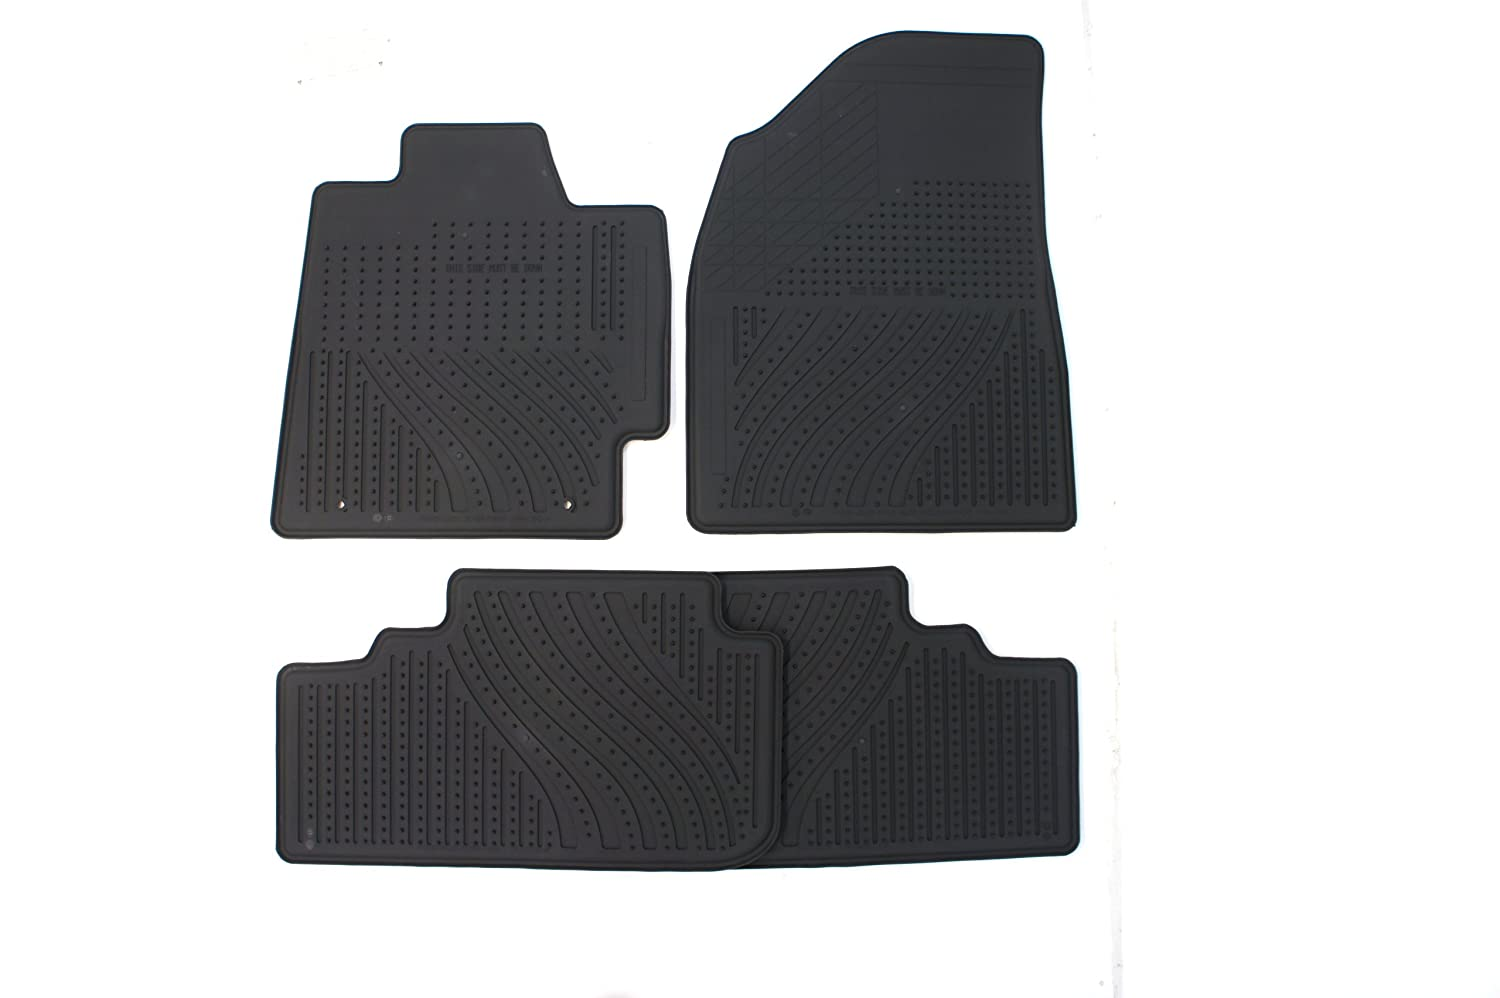 Black Genuine Toyota Accessories PT908-48G00-02 Front and Rear All-Weather Floor Mat - Set of 4